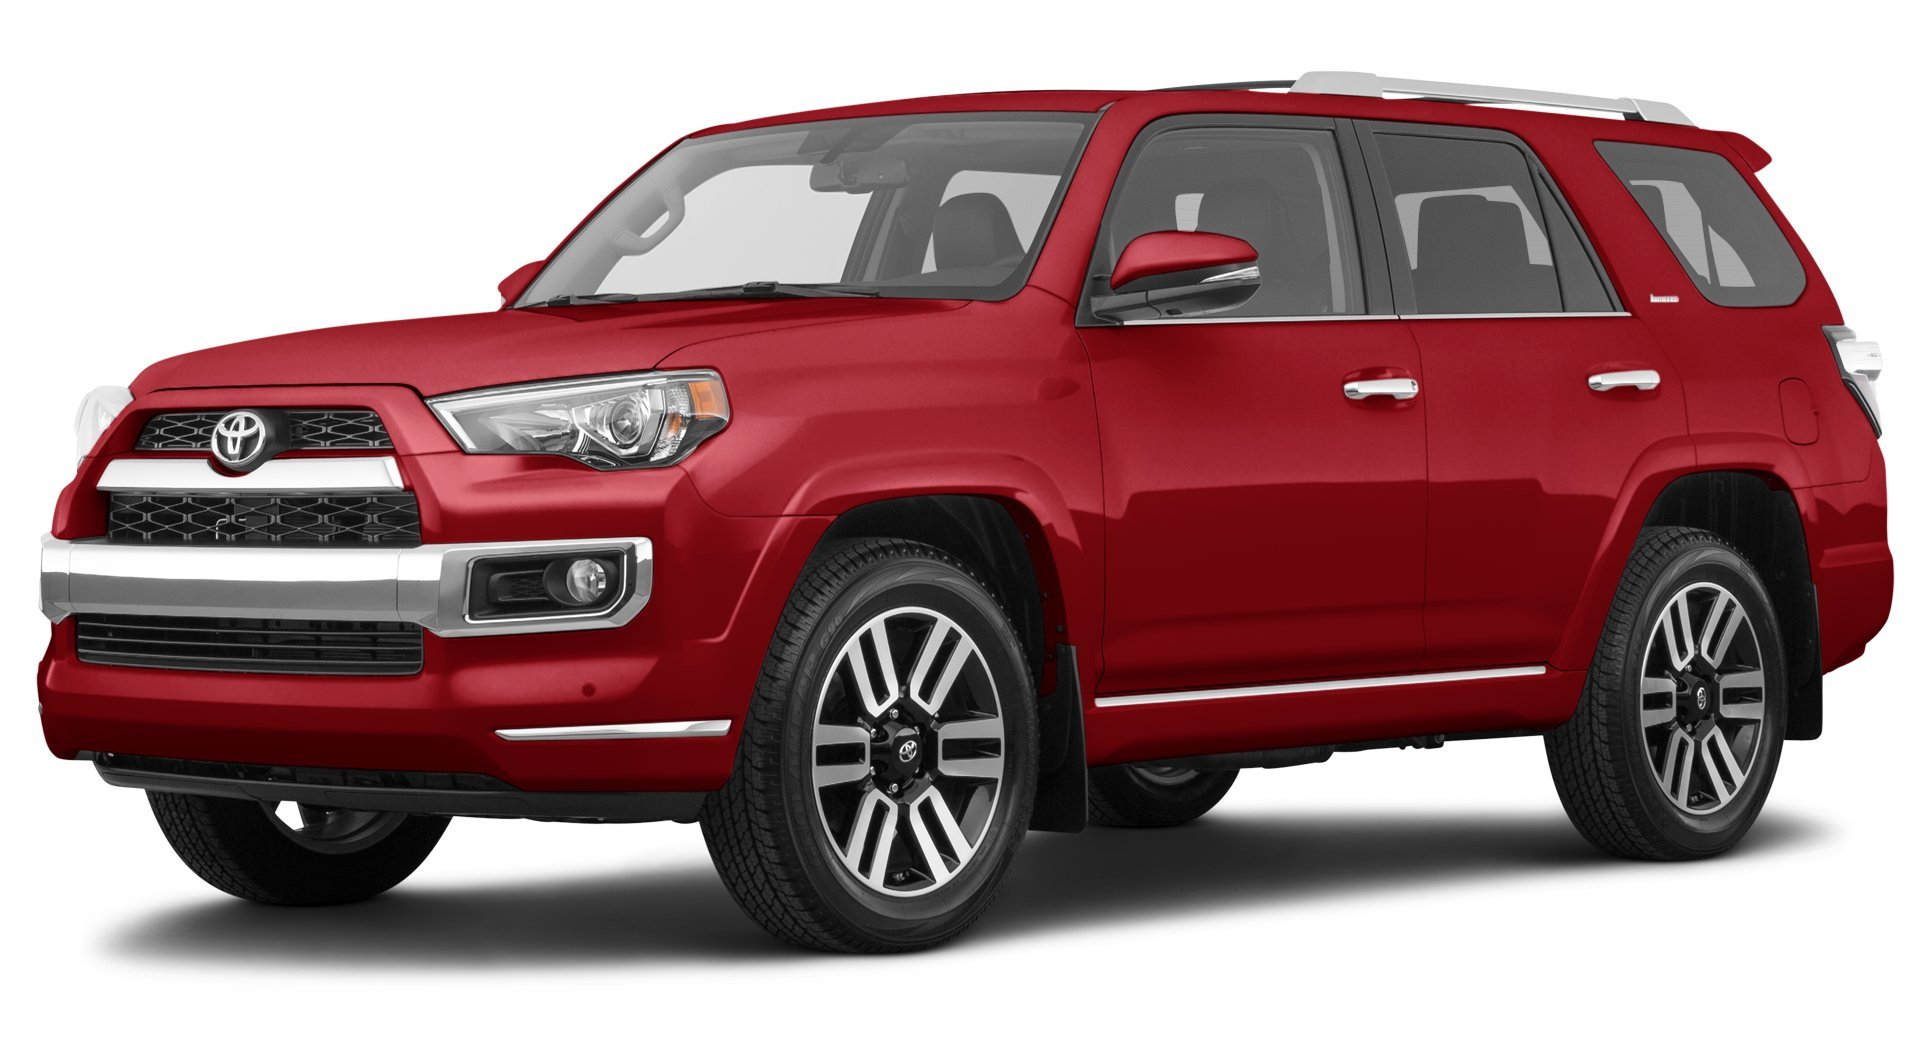 2018 toyota 4runner reviews images and specs. Black Bedroom Furniture Sets. Home Design Ideas